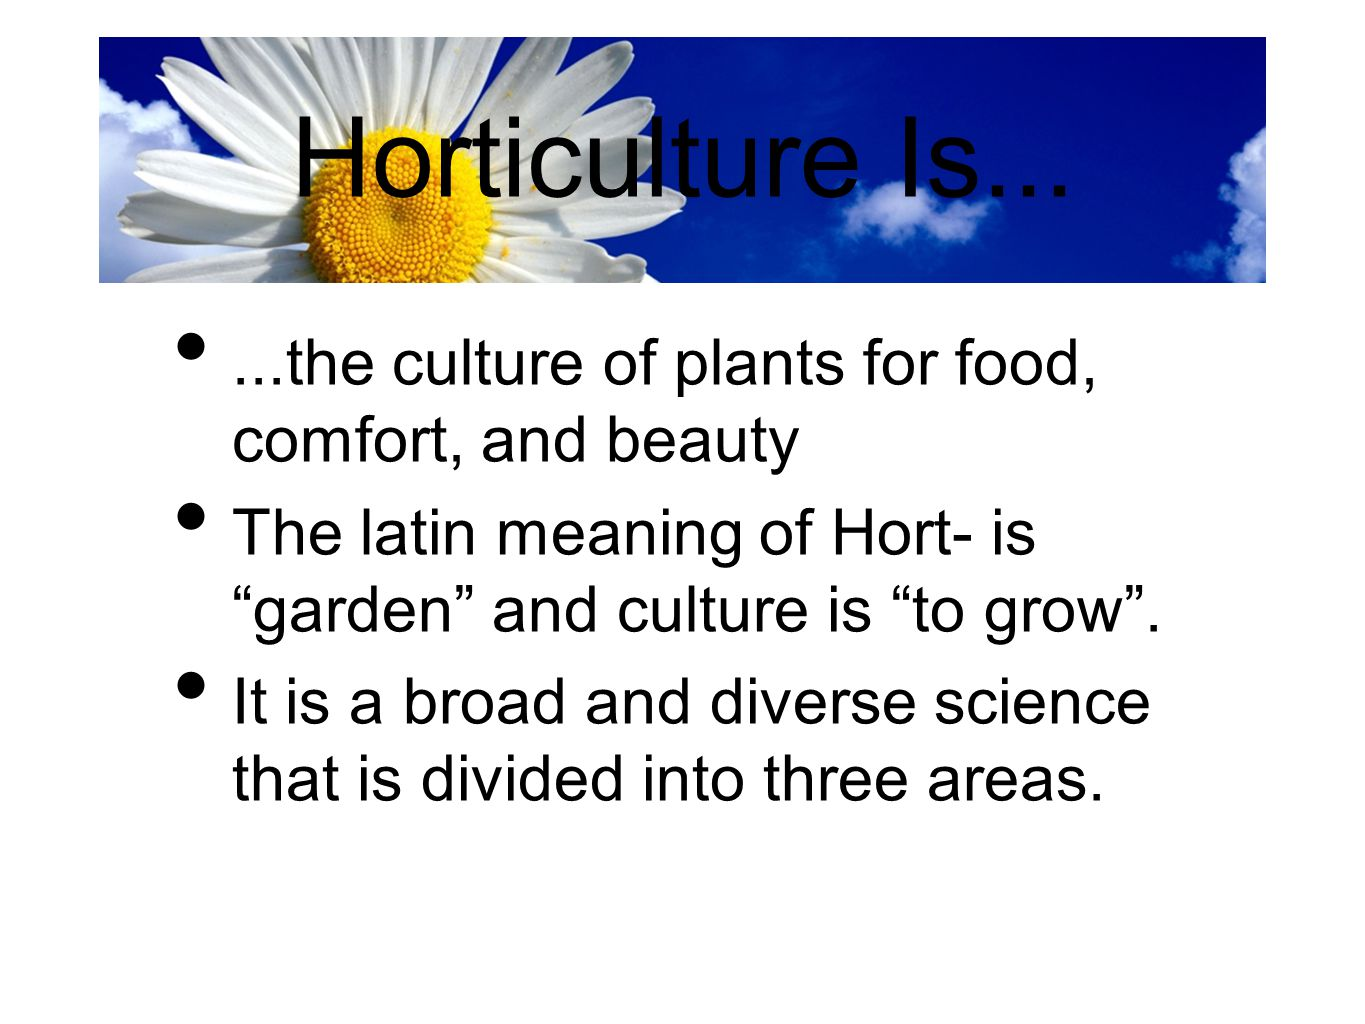 Horticulture Is... ...the culture of plants for food, comfort, and beauty. The latin meaning of Hort- is garden and culture is to grow .